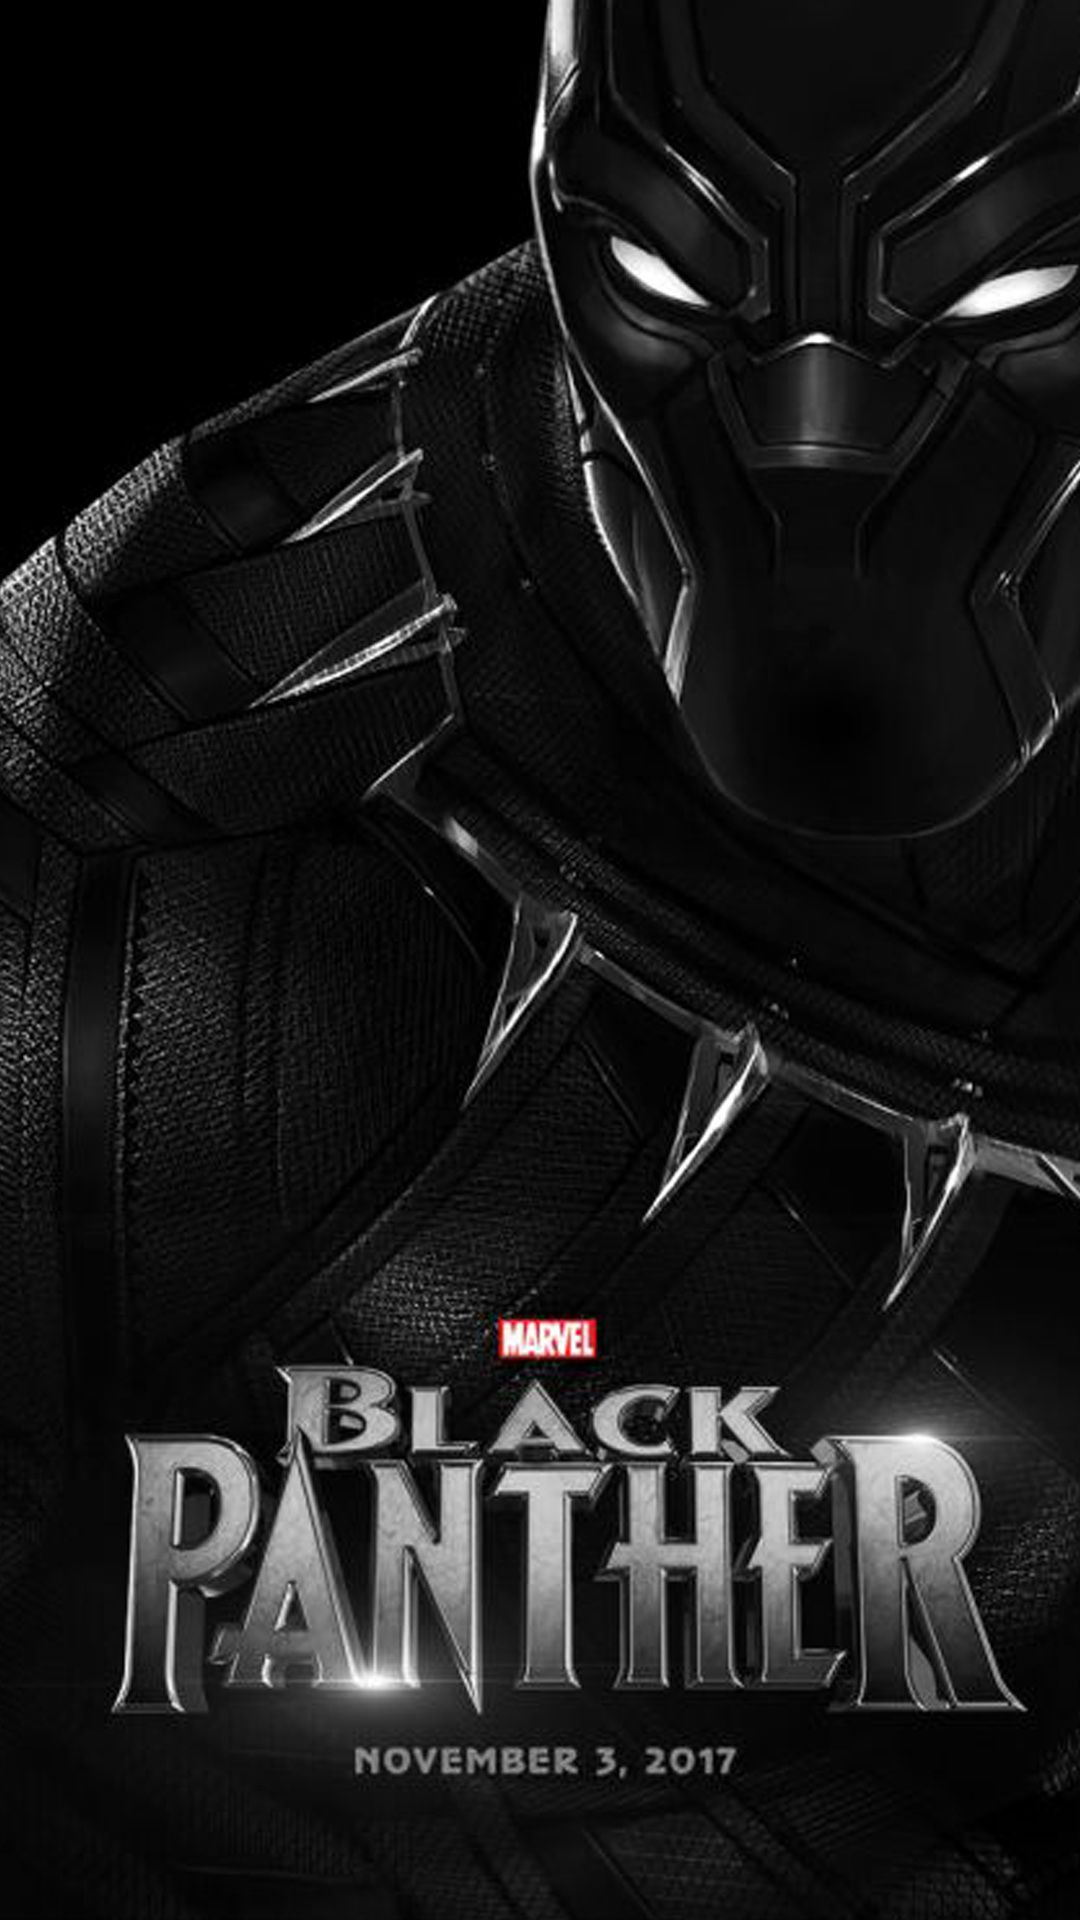 Black Panther Wallpapers Desktop Sdeerwallpaper Черная